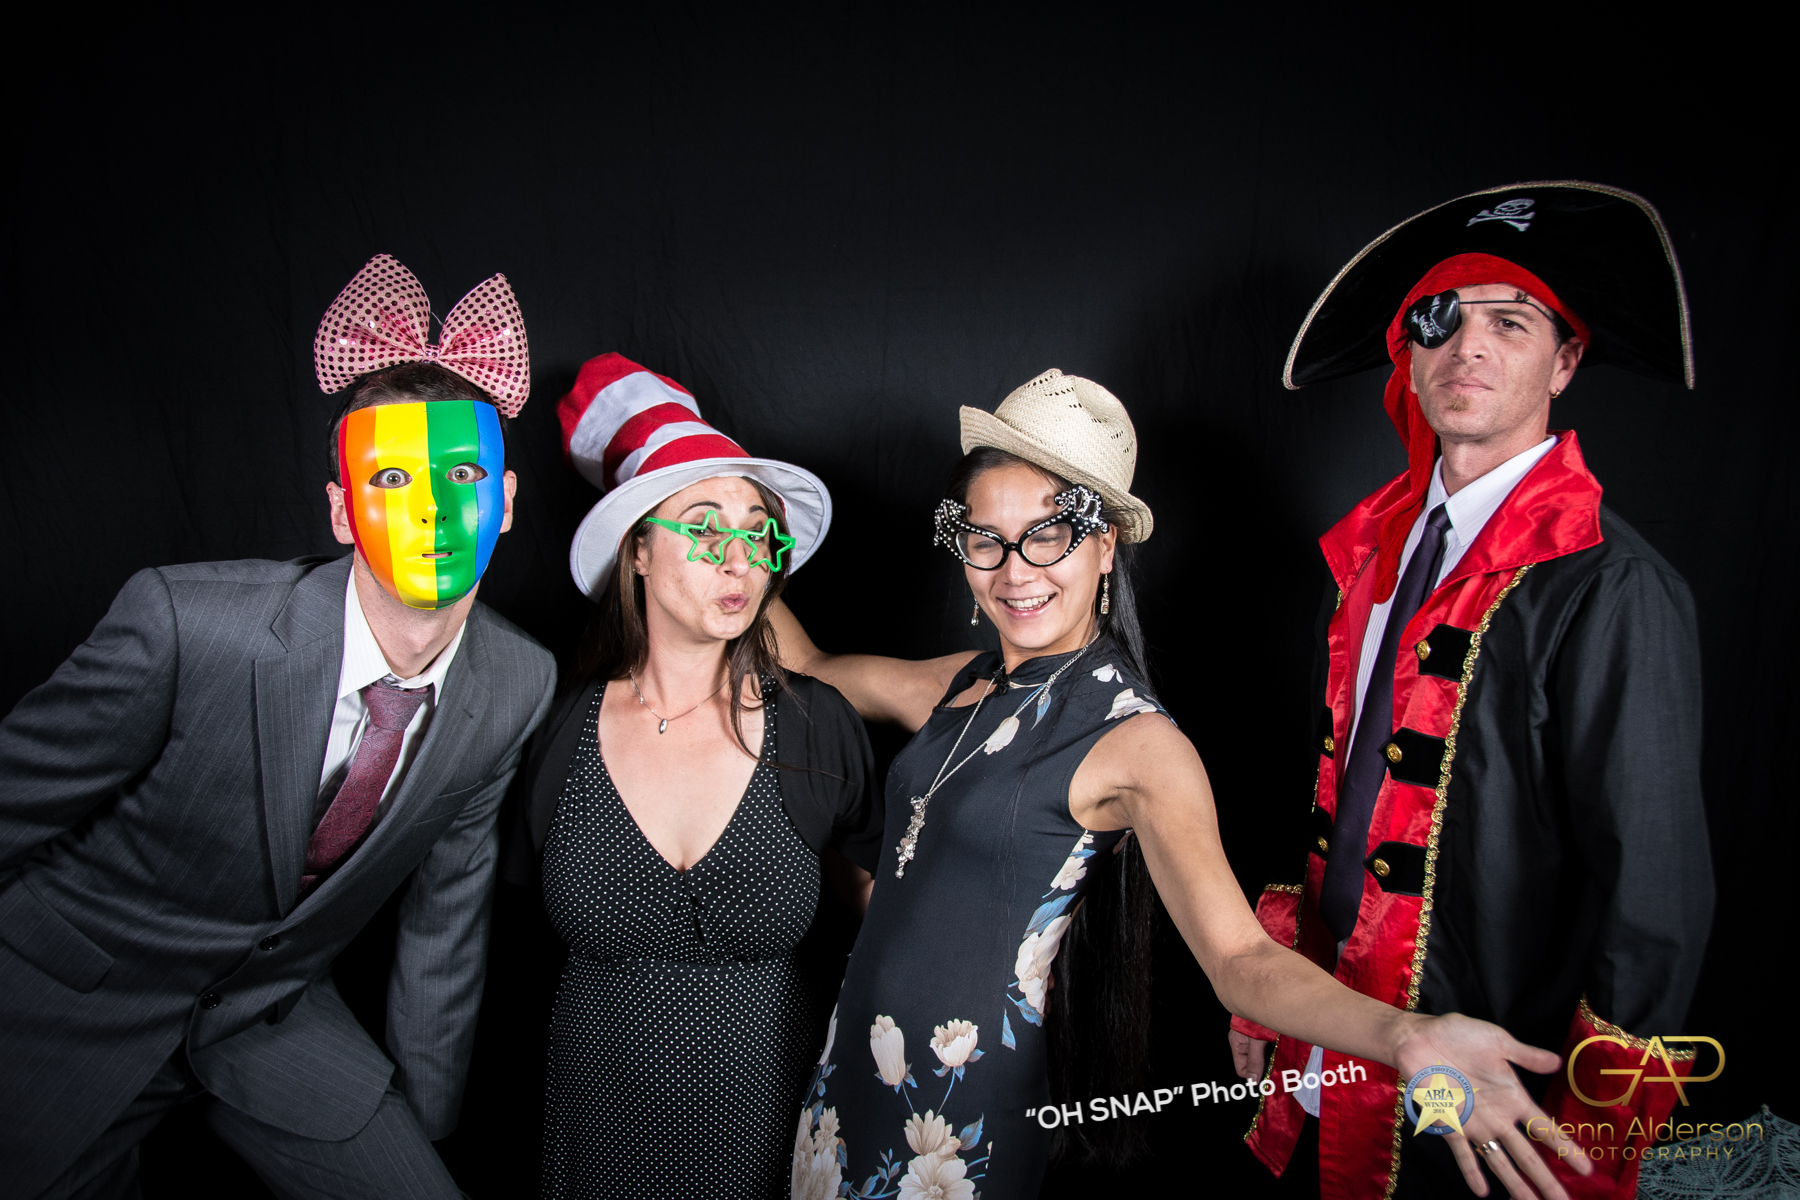 Adelaide Photo booth (2 of 20)